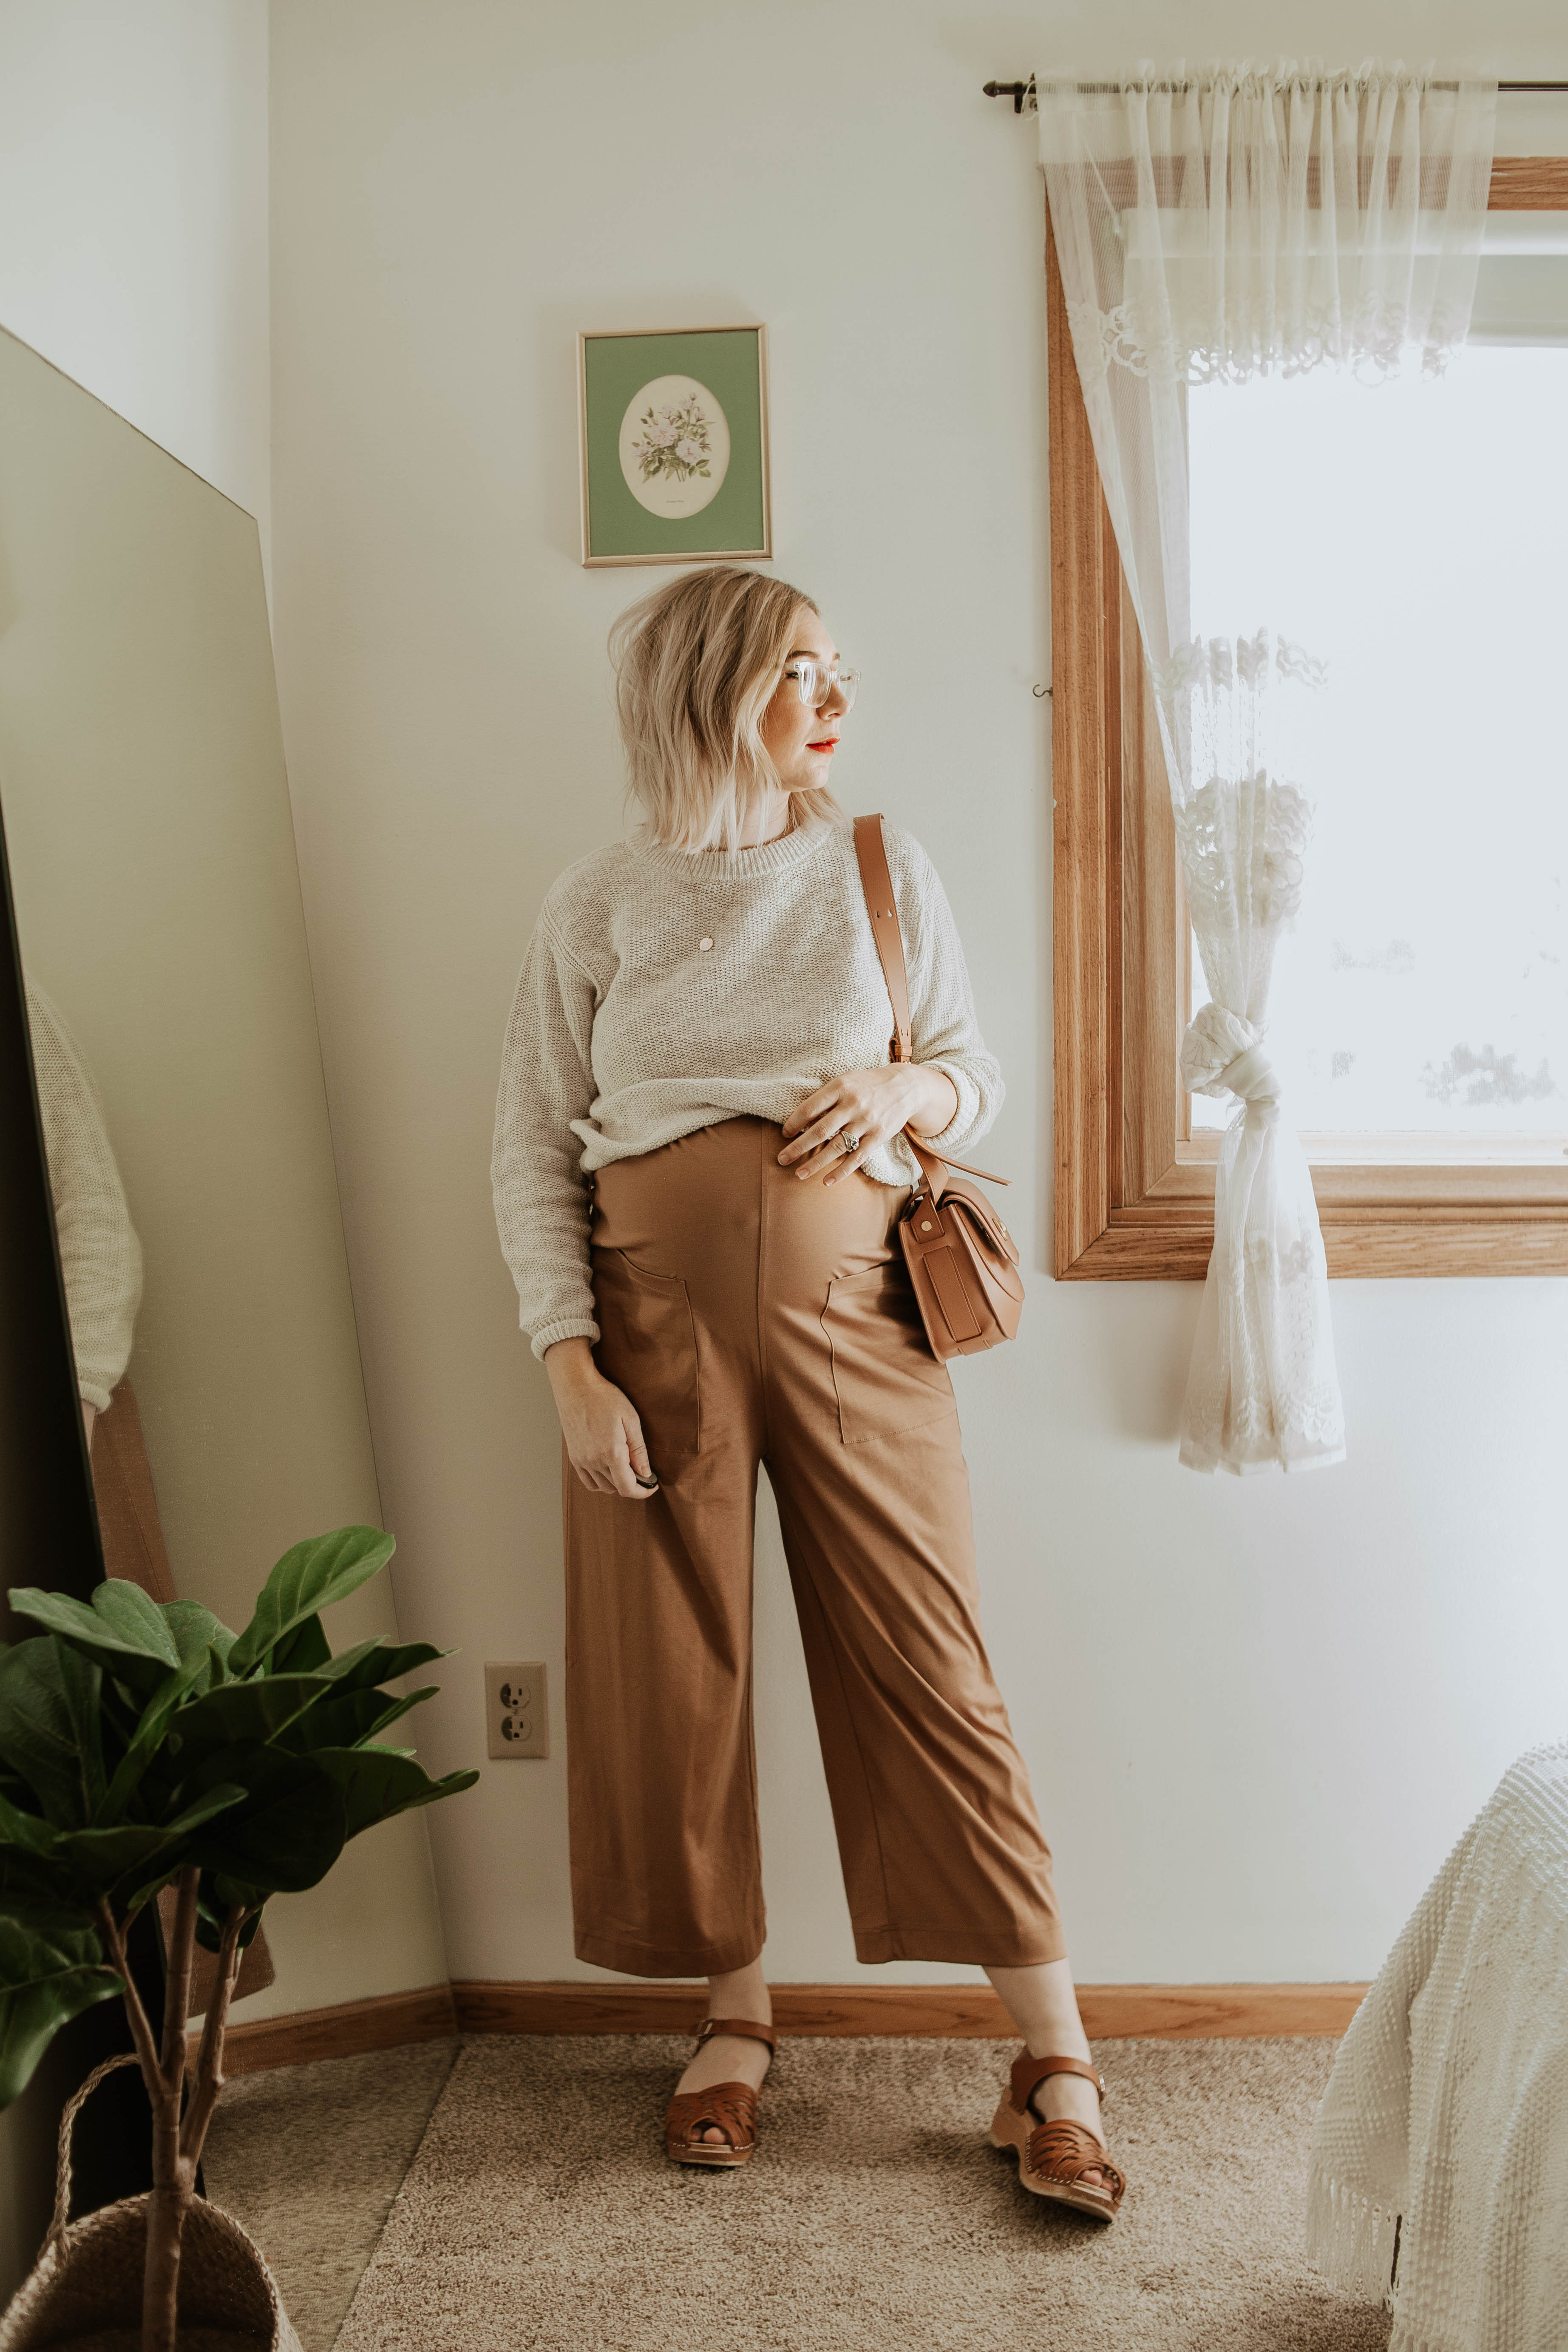 Transitional Summer to Fall Outfitseverlane cotton jumpsuit toasted almond, everlane cotton sweater, friday by jwpei brown saddle bag, troentorp clogs, ann clogs